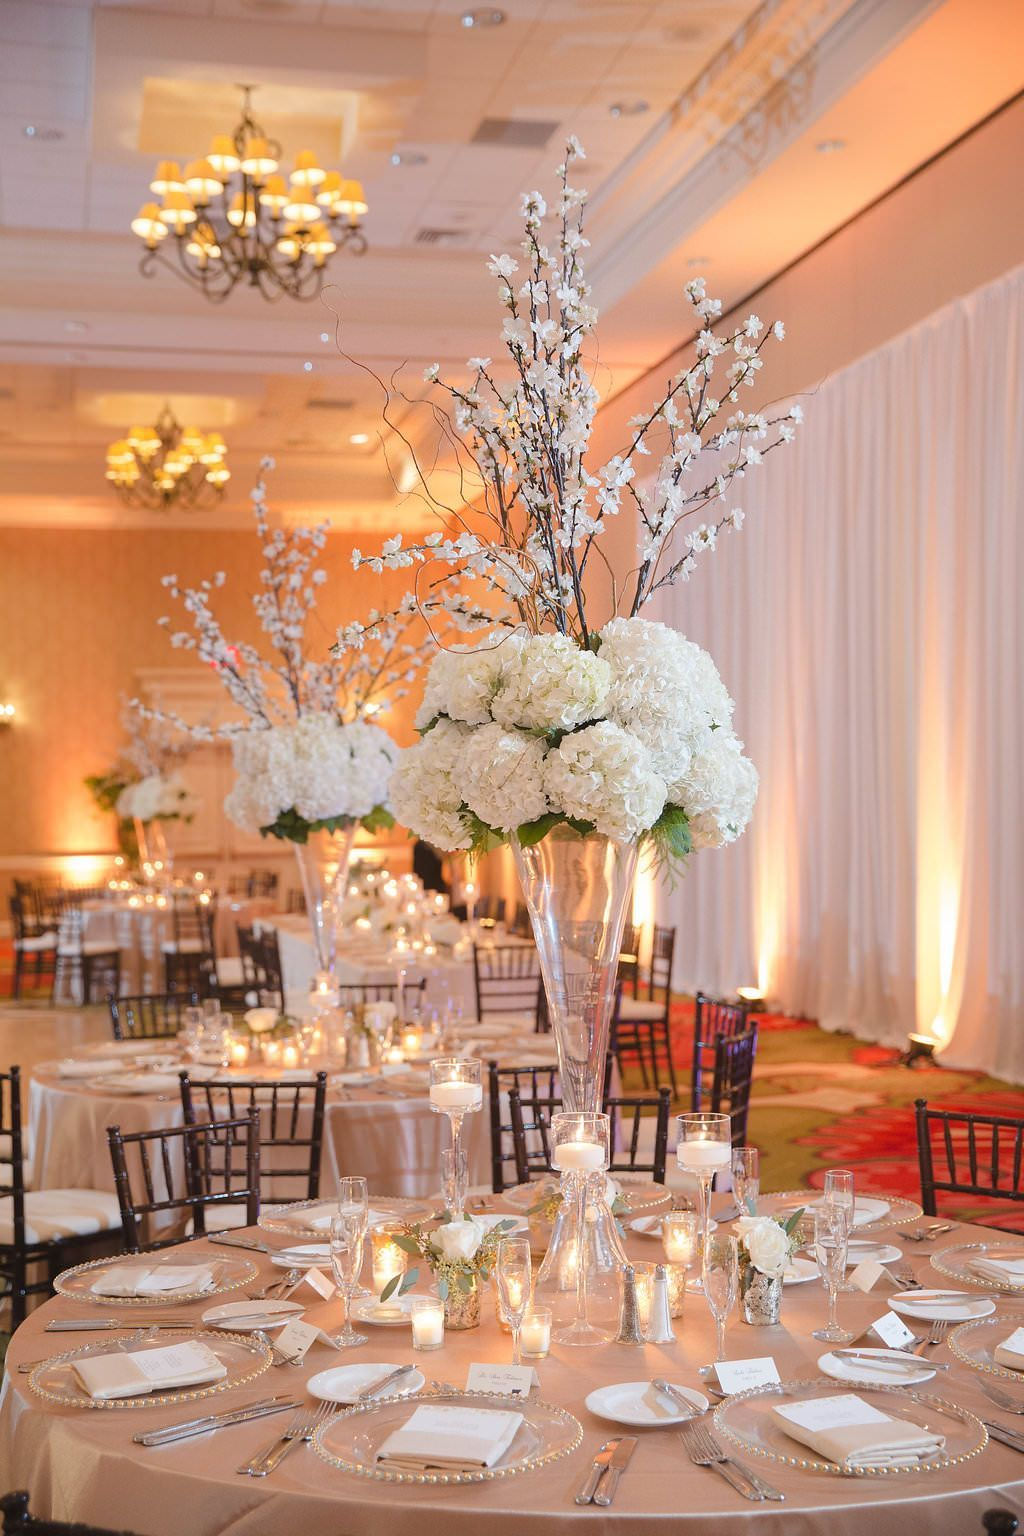 Hotel Ballroom Gold And White Wedding Reception Round Table Decor With Tall White Wedding Reception Table Decorations Flower Centerpieces Wedding Wedding Table